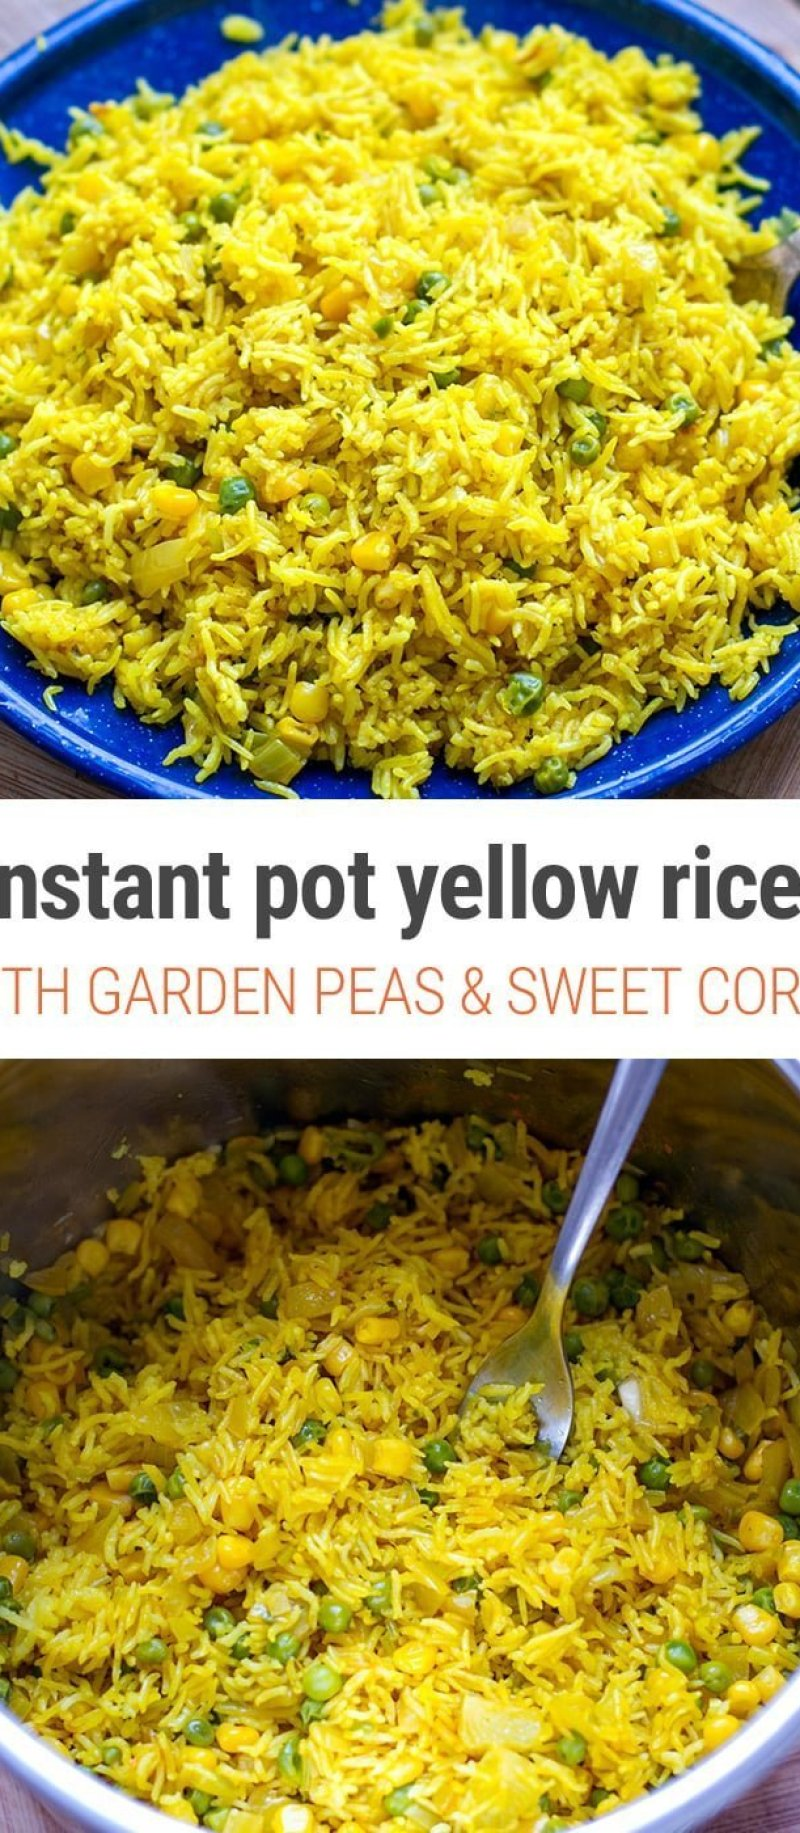 Homemade Yellow Rice Pot With Peas & Corn - Instant Pot Recipe, Gluten-Free